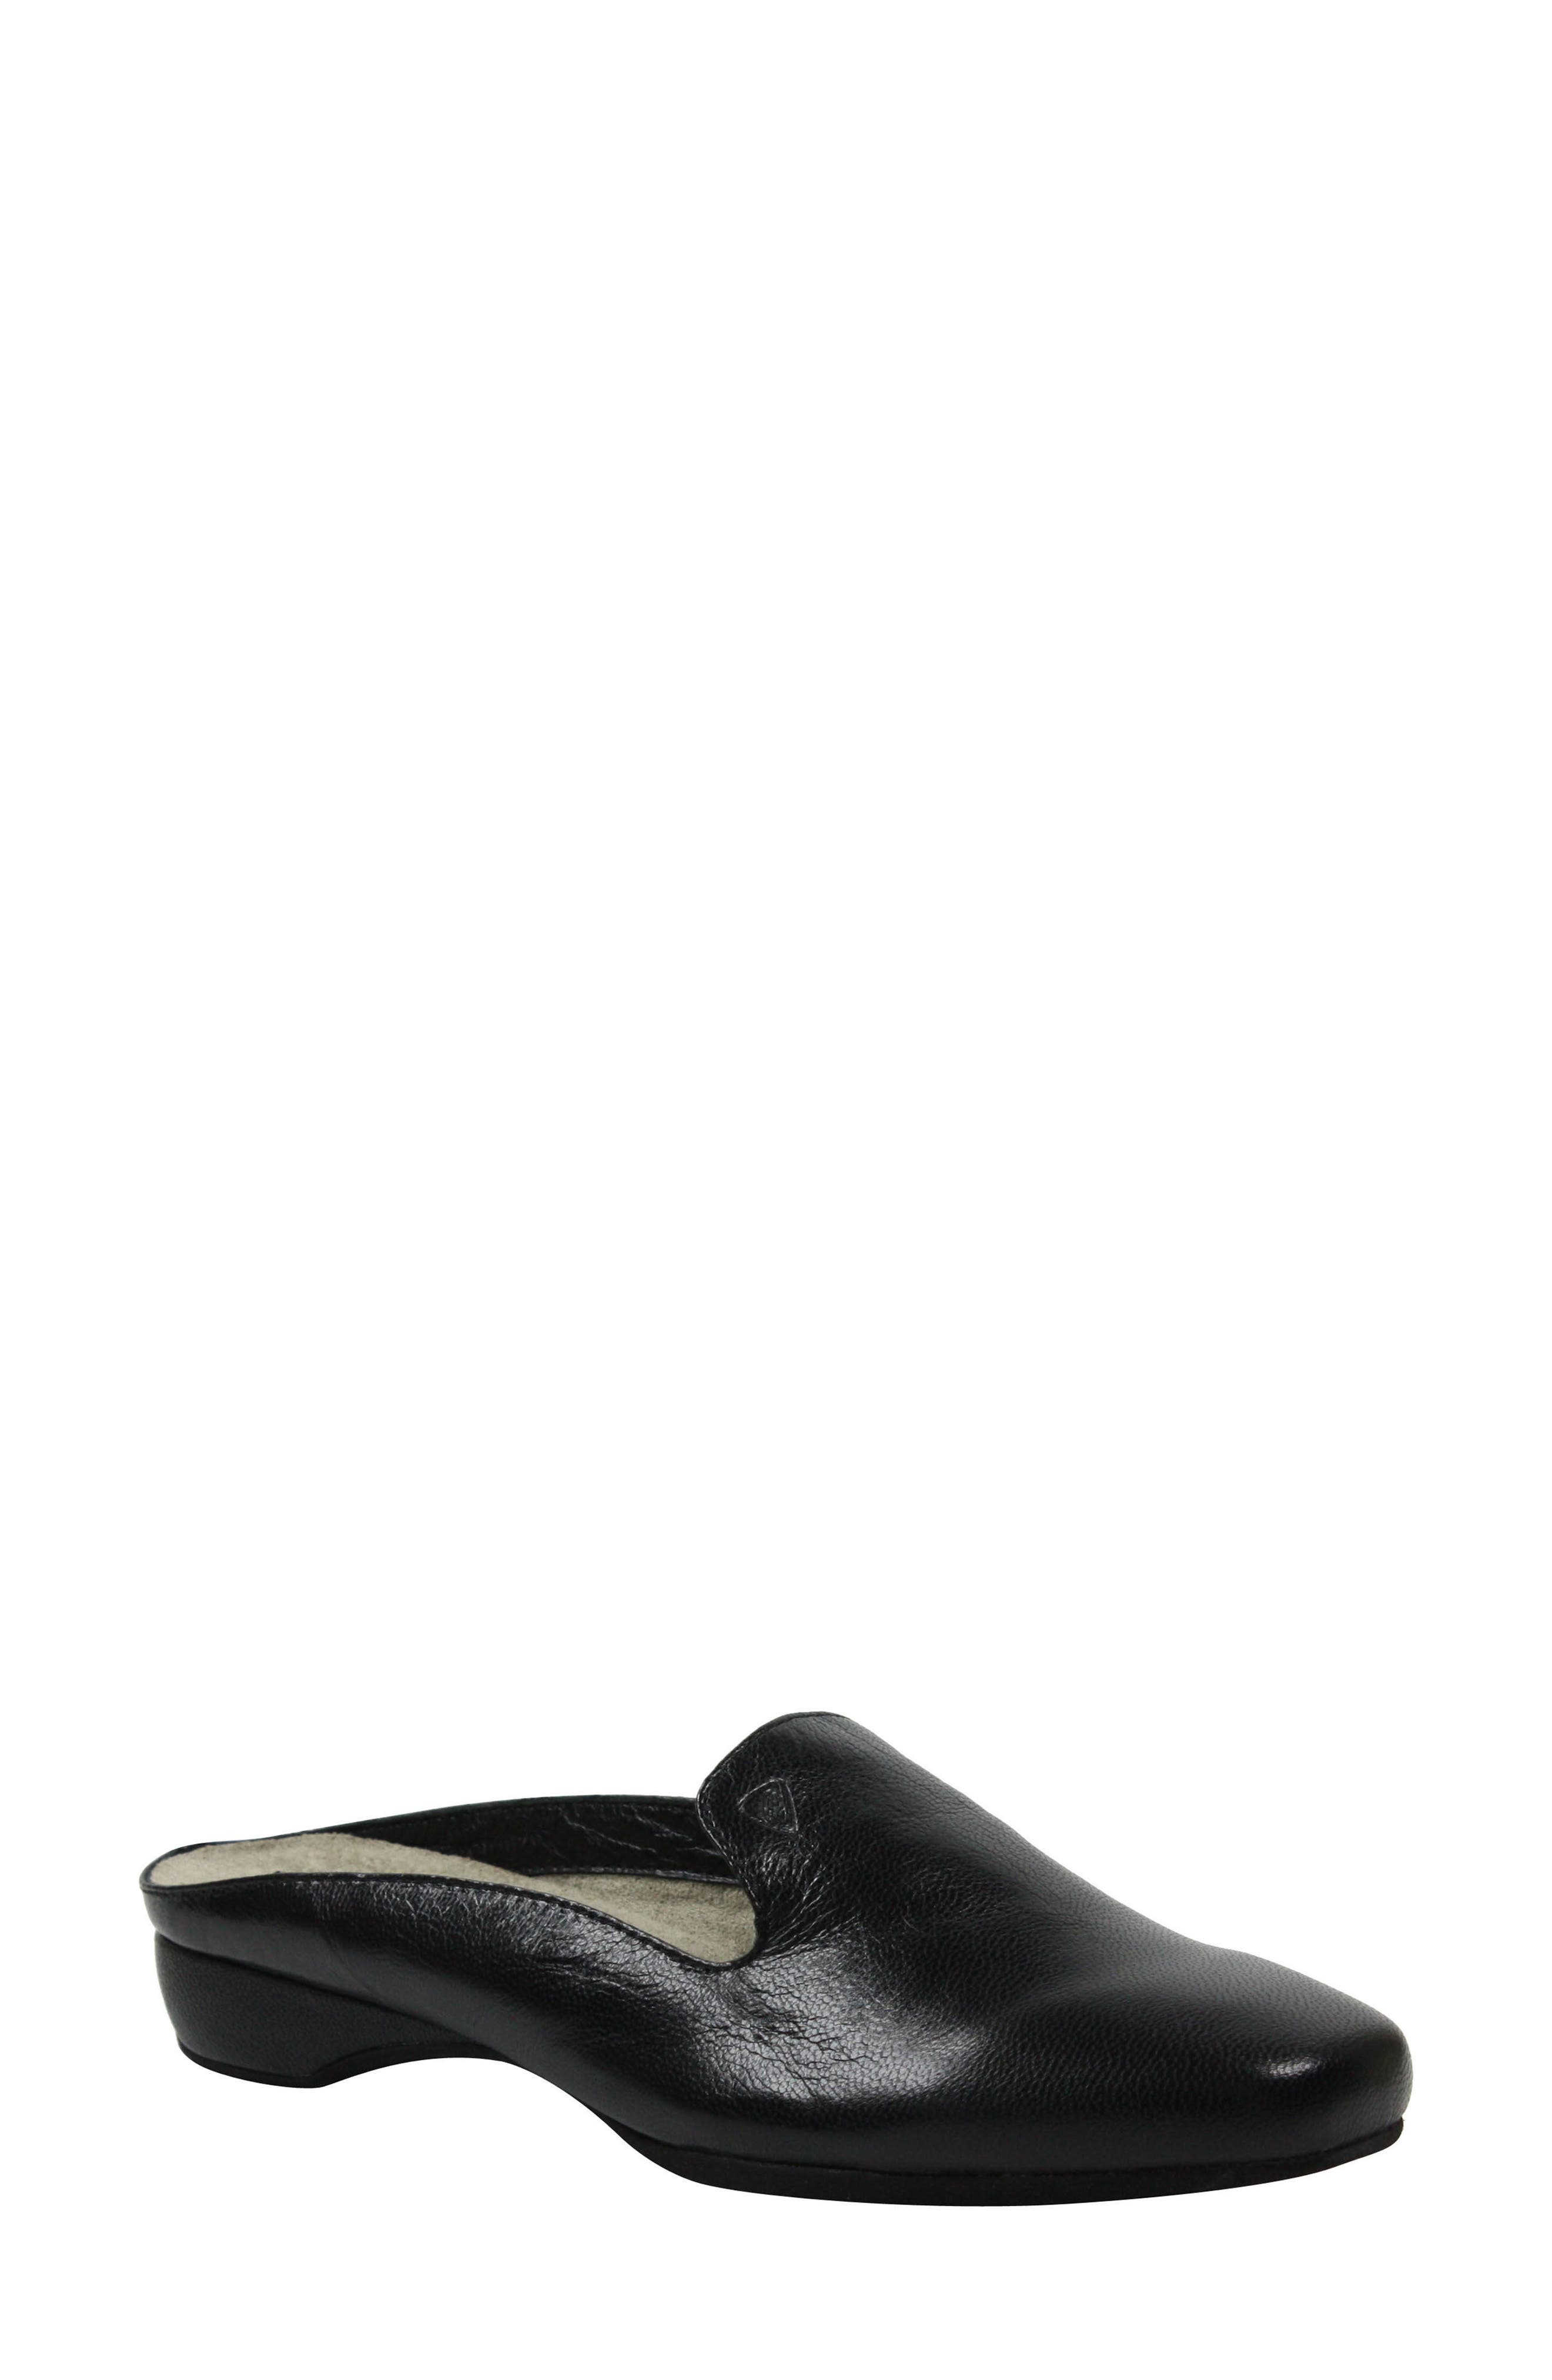 Chesir Mule,                         Main,                         color, BLACK LEATHER